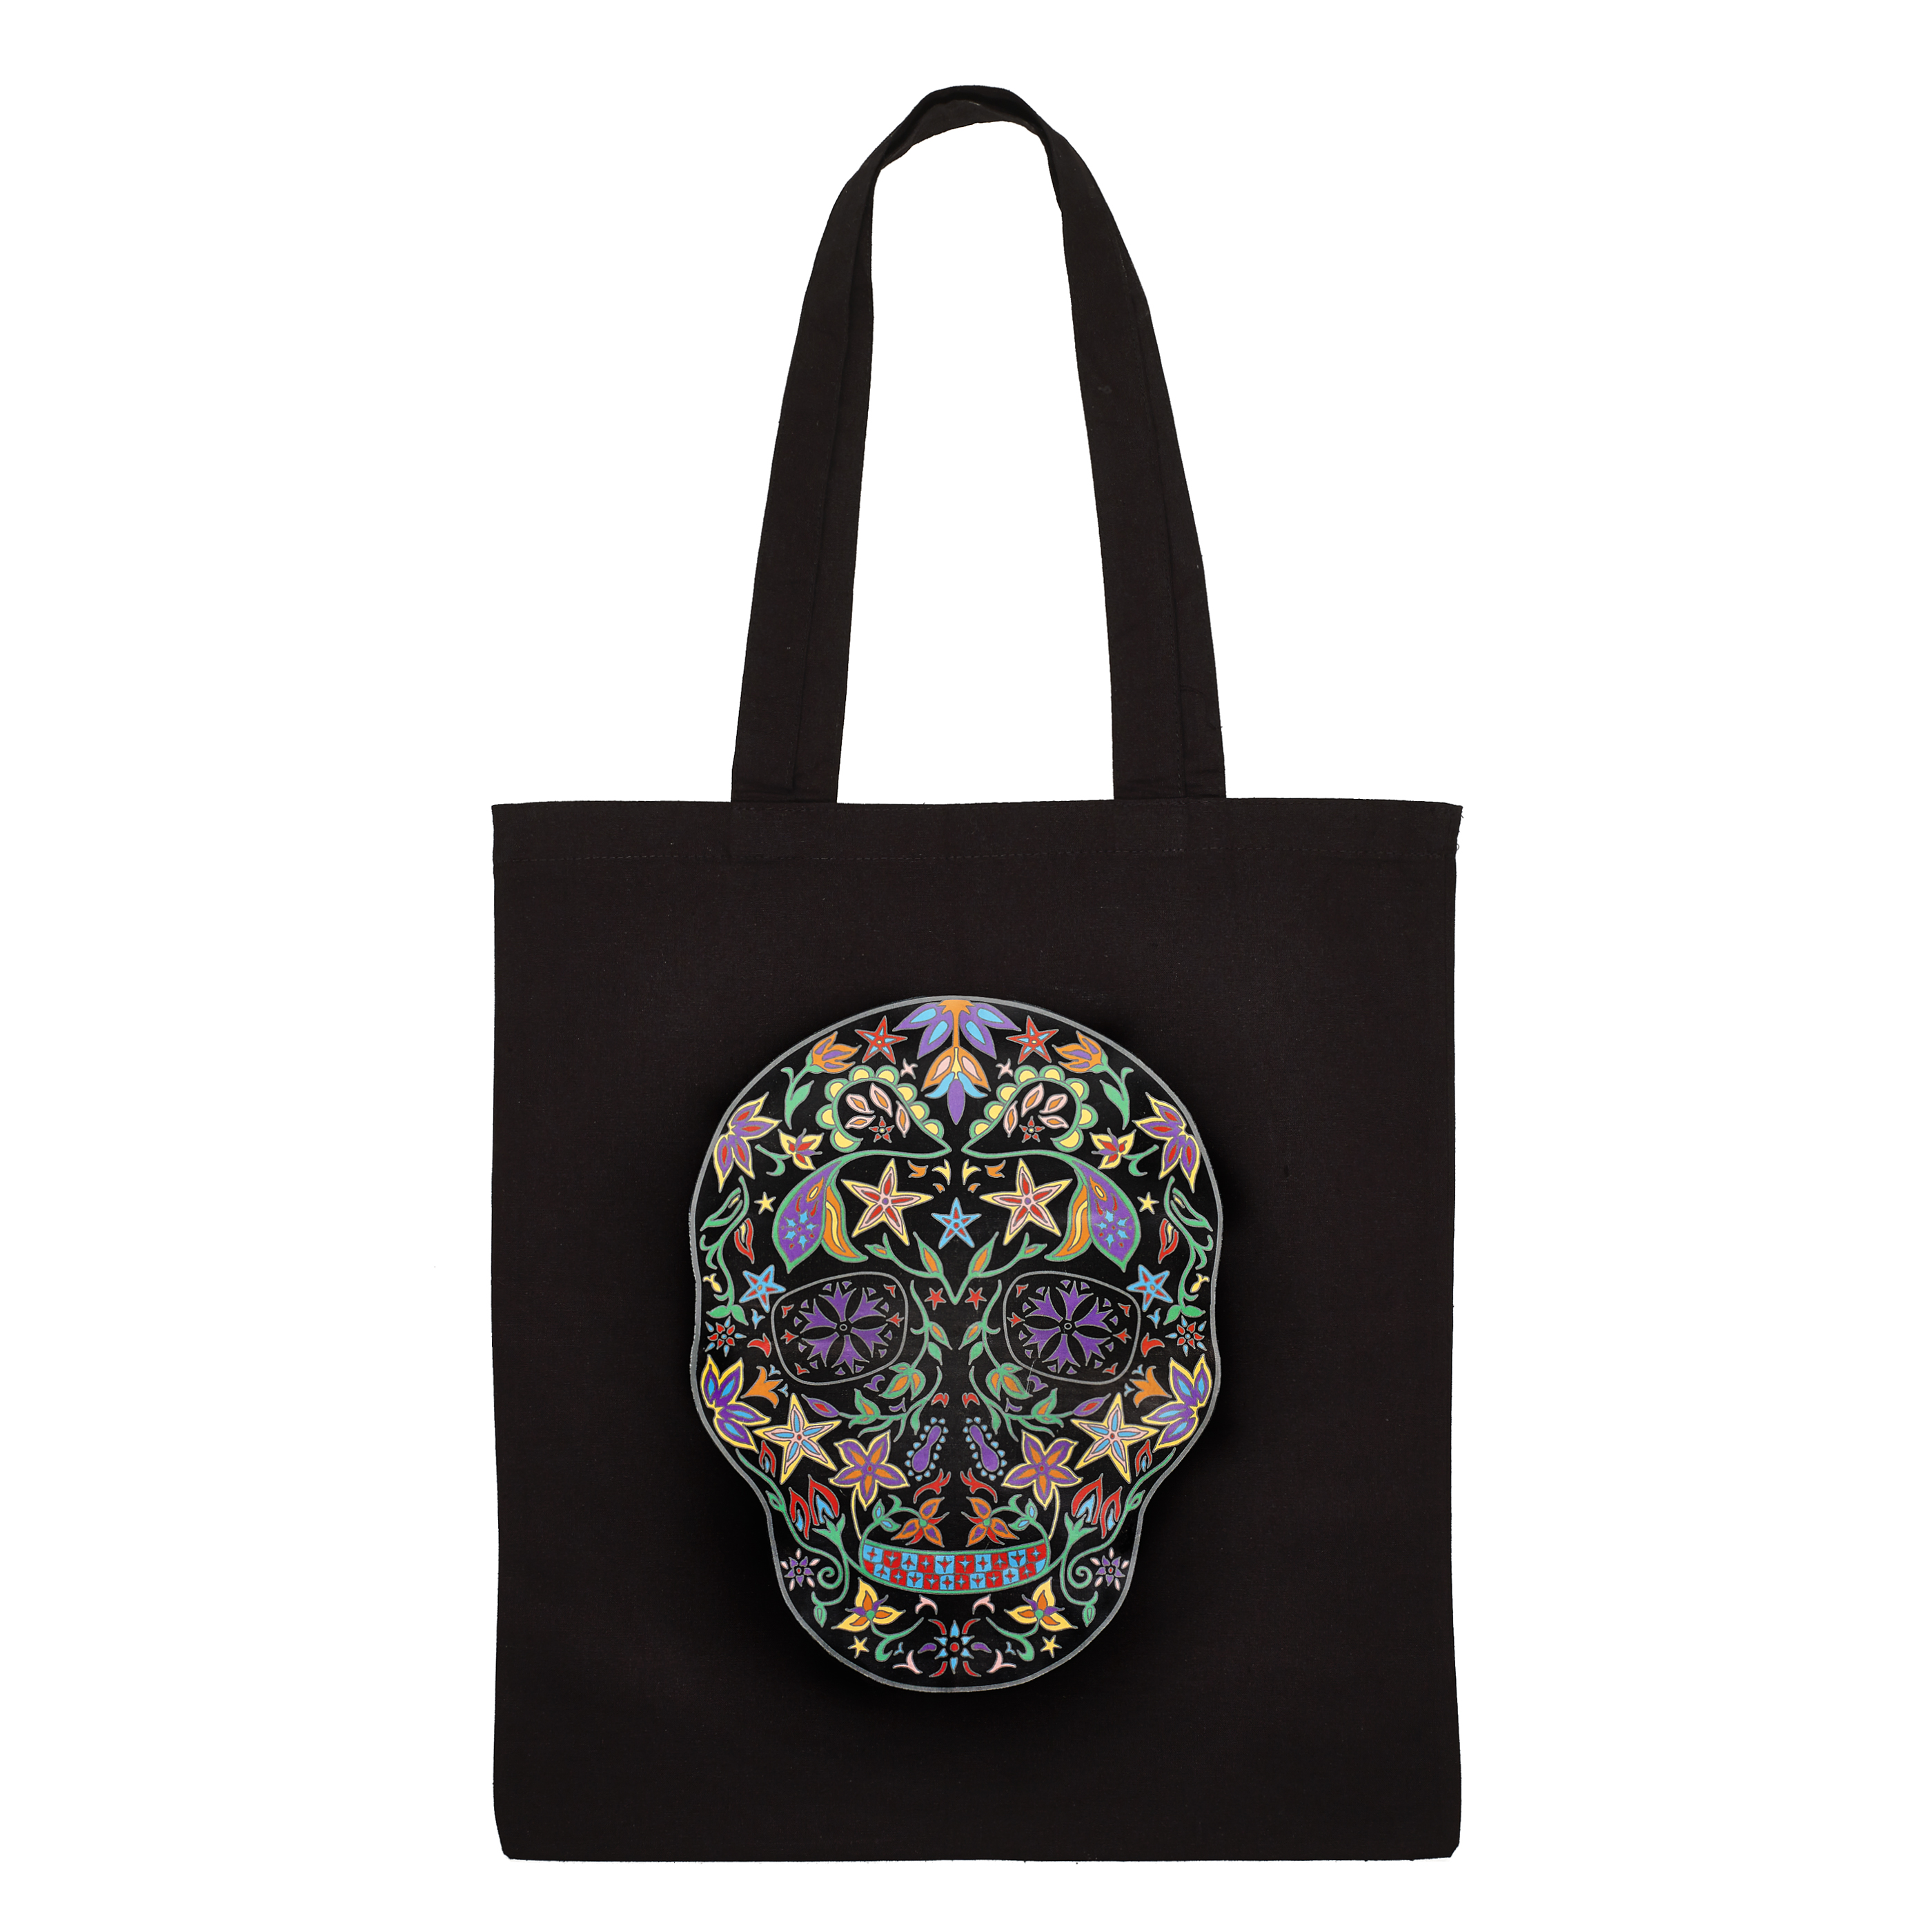 Day of the dead totebag